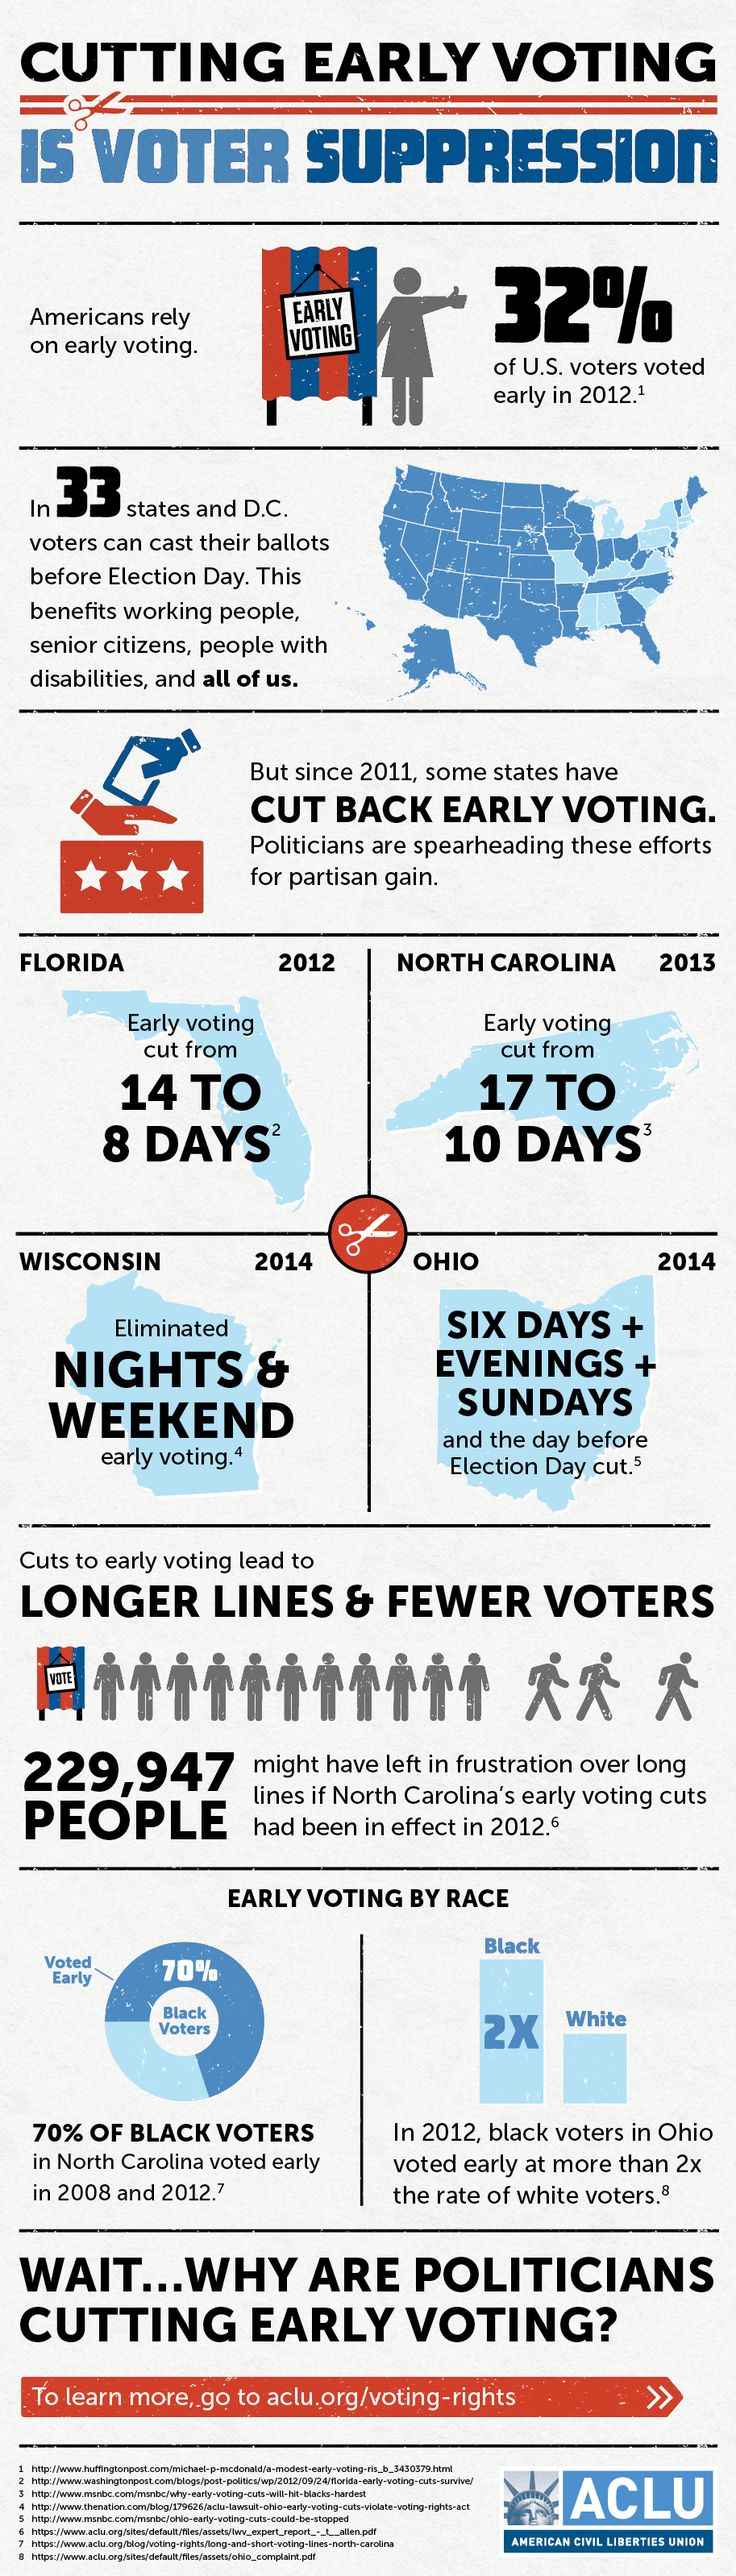 Cutting Early Voting is Voter Suppression (an #infographic from the ACLU)